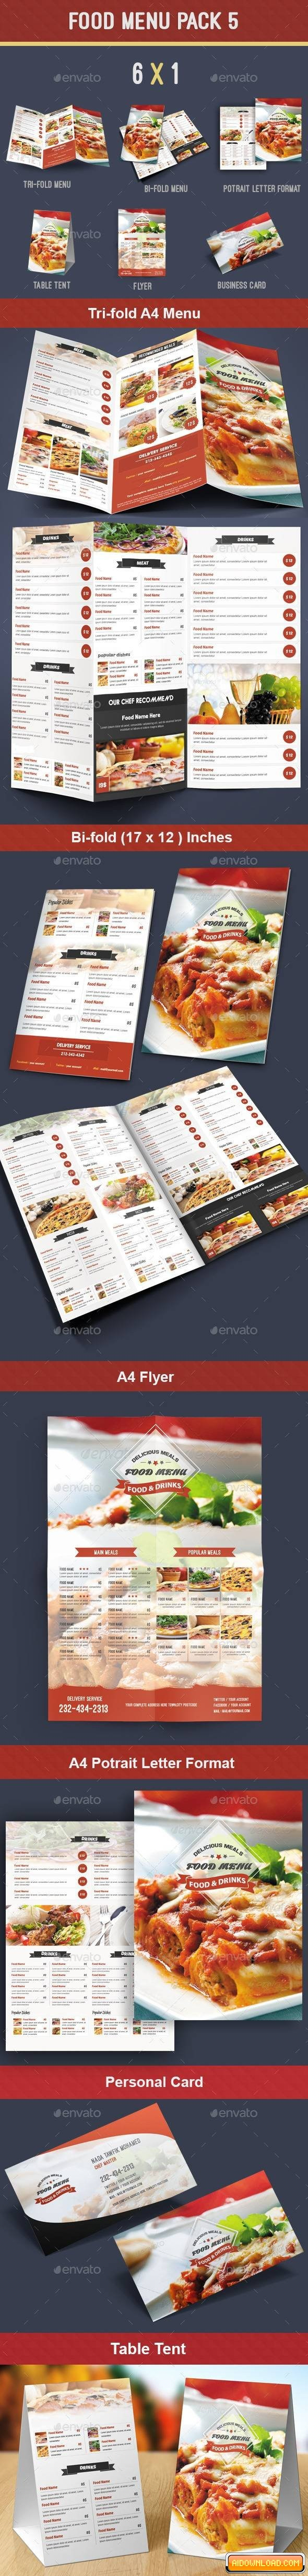 Food Menu Pack 5 Free Download | Free Graphic Templates, Fonts ...